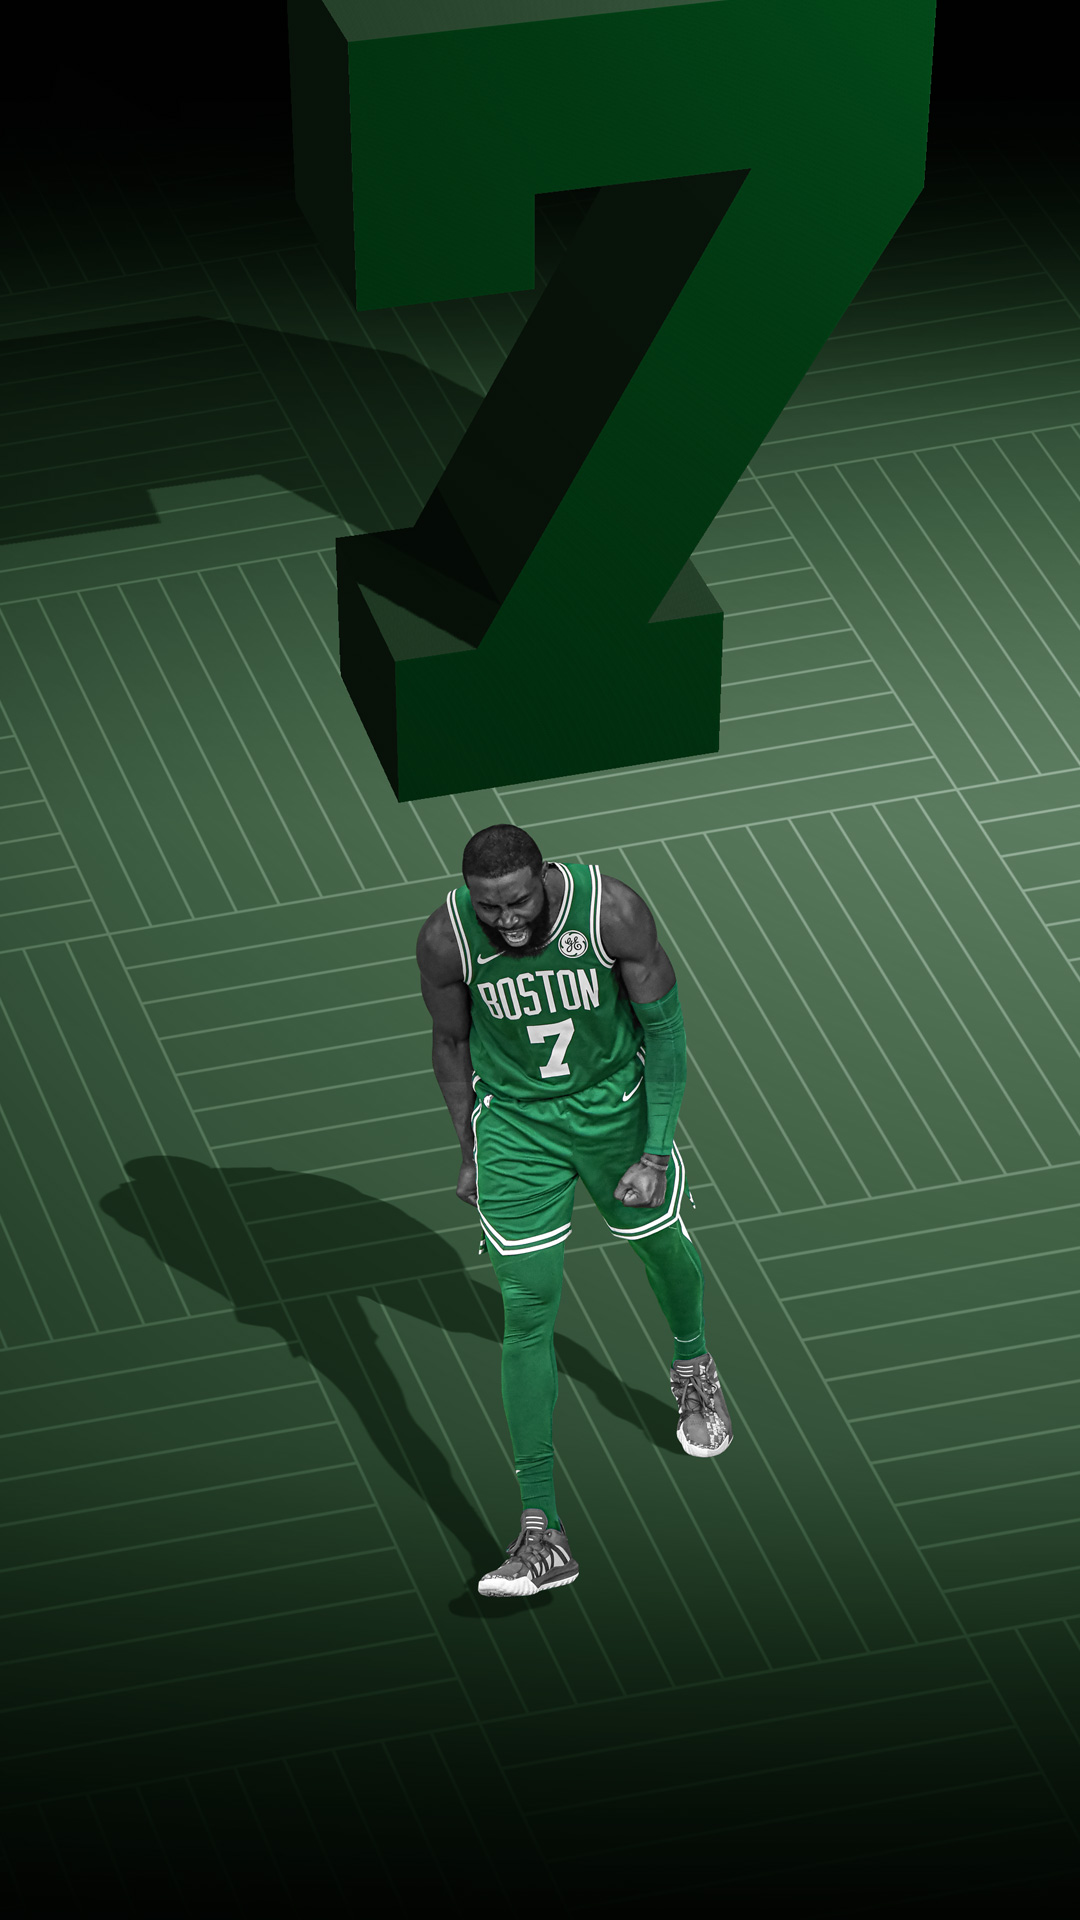 Mobile Wallpapers Boston Celtics